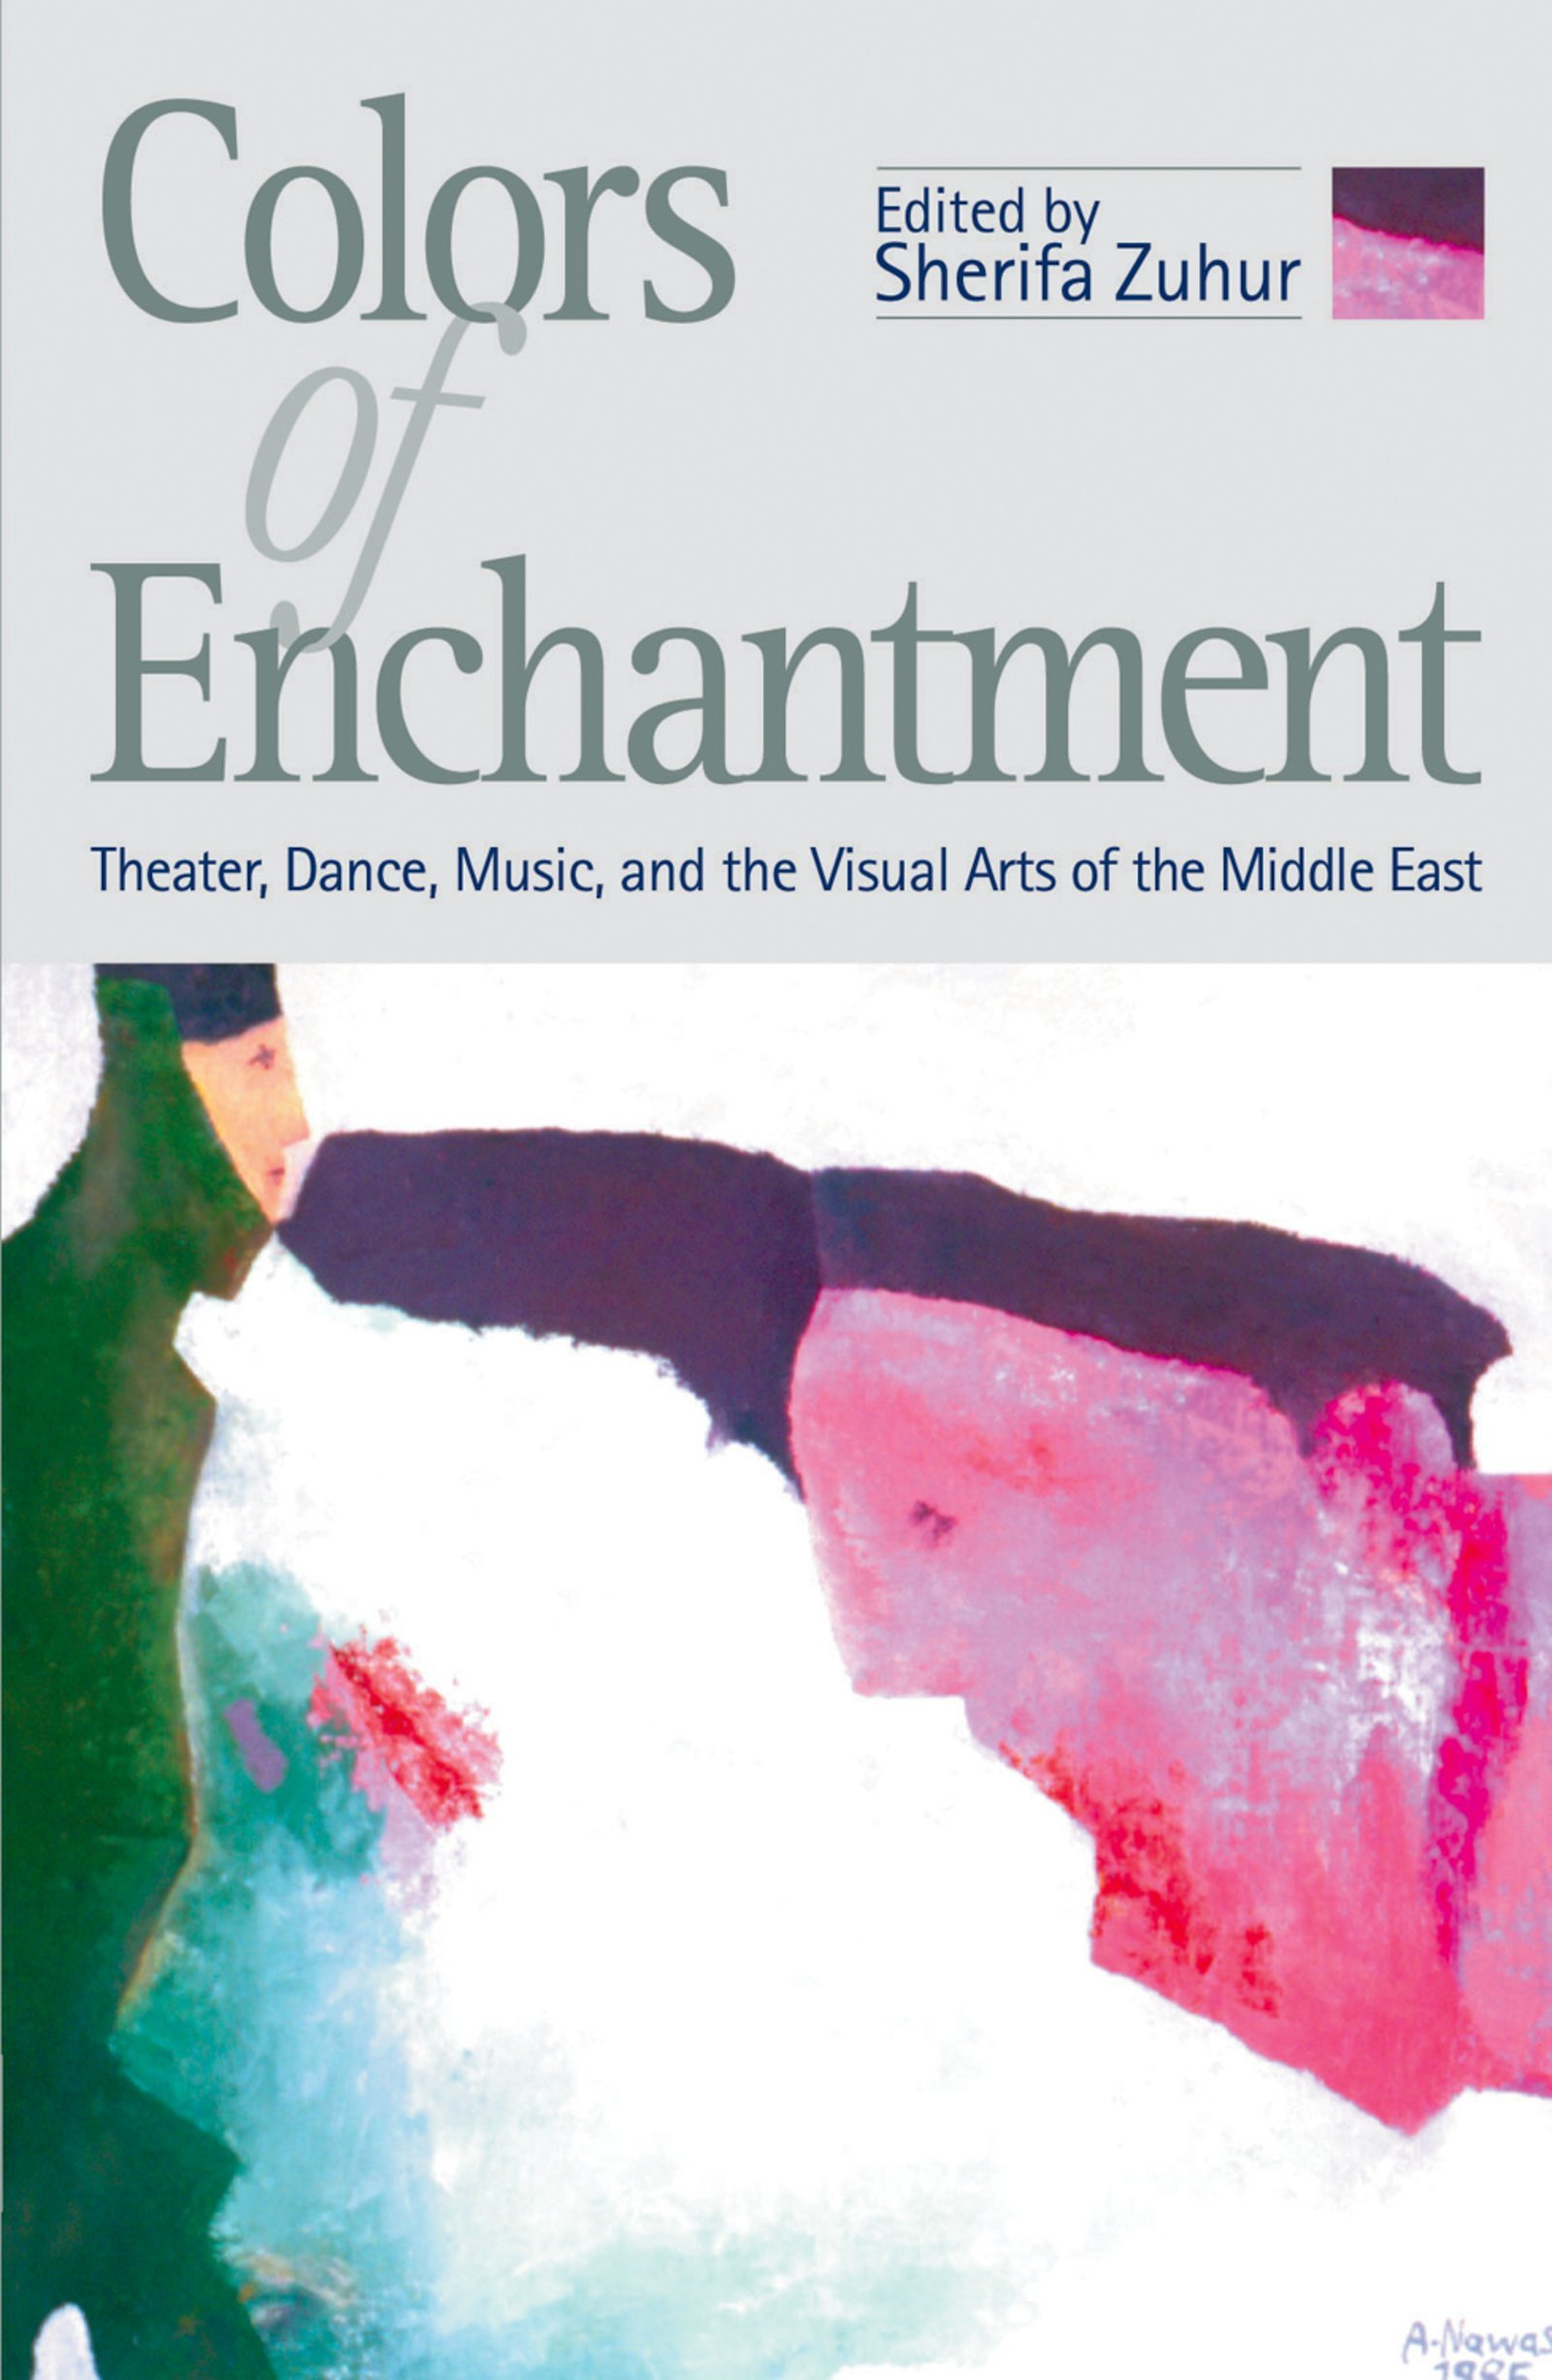 Rashad Rida, From Cultural Authenticity to Social Relevance: The Plays of Amin al-Rihani, Kahlil Gibran, and Karim Alrawi, in Colors of Enchantment